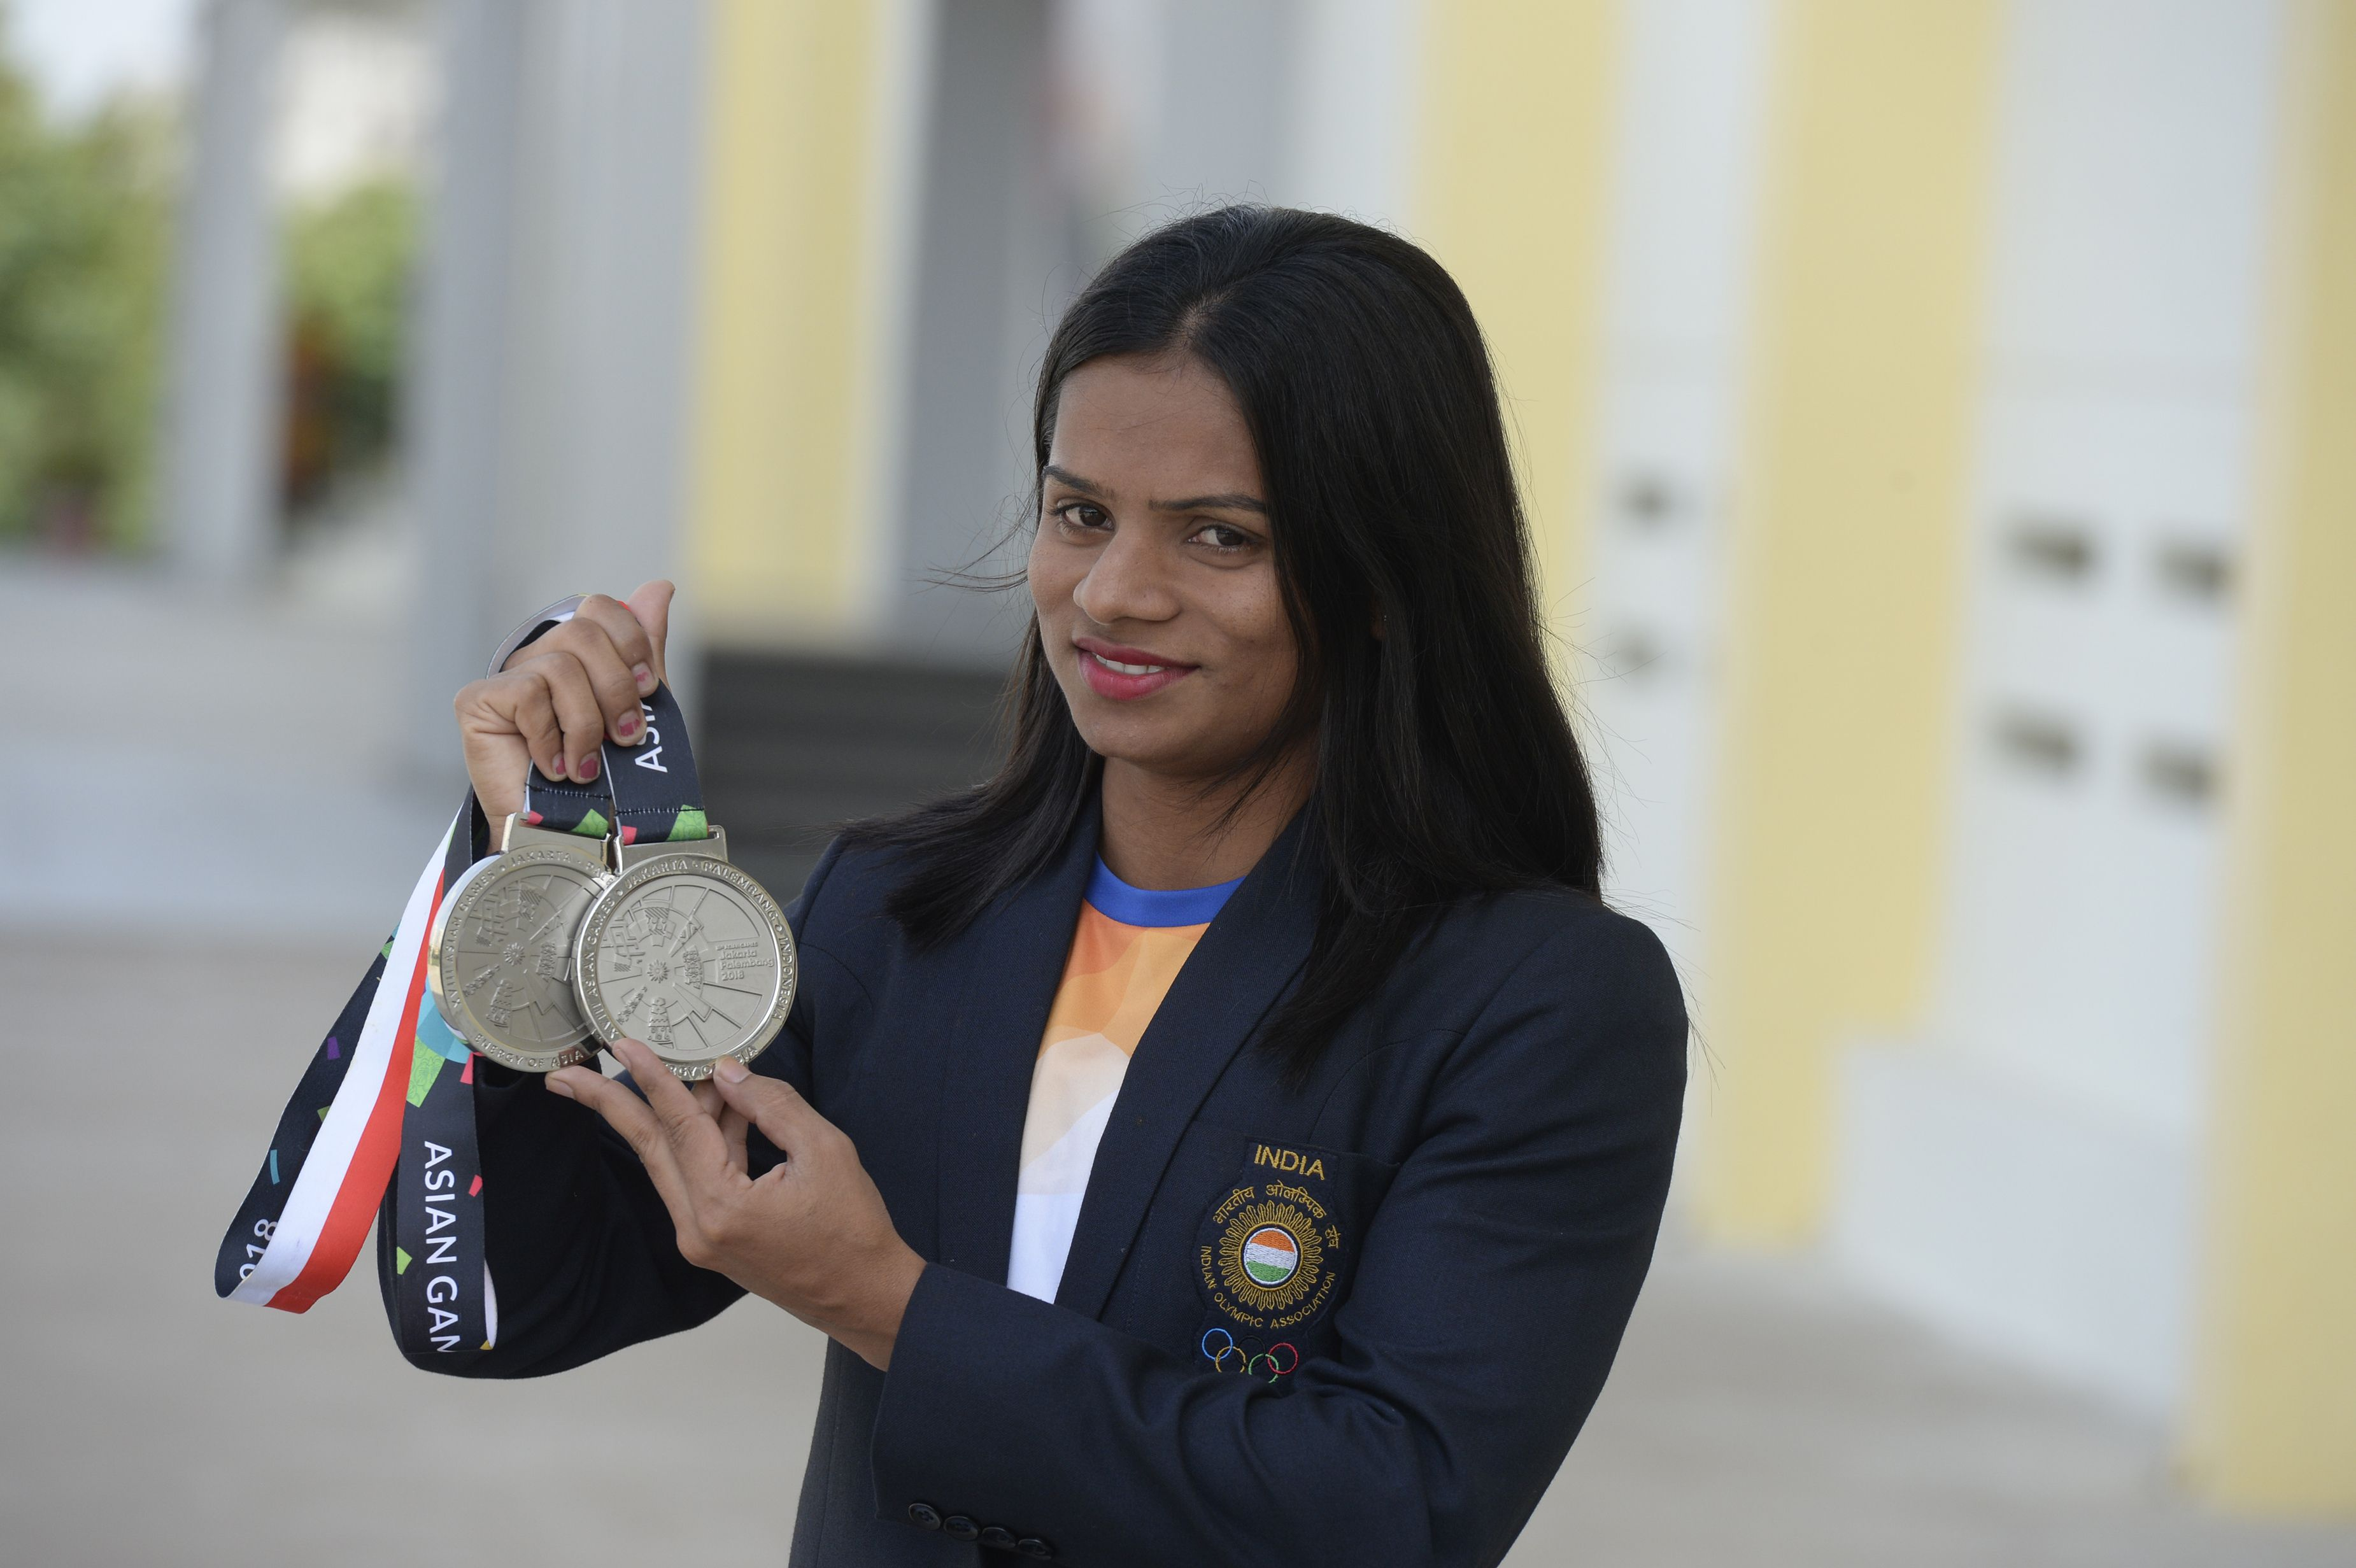 Indian sprinter Dutee Chand poses with her silver medals prior to a press conference in Hyderabad on September 1, 2018. - Dutee Chand won silver medals in 100m and 200m athletics event during the 2018 Asian Games in Jakarta. (Photo by NOAH SEELAM / AFP)        (Photo credit should read NOAH SEELAM/AFP/Getty Images)